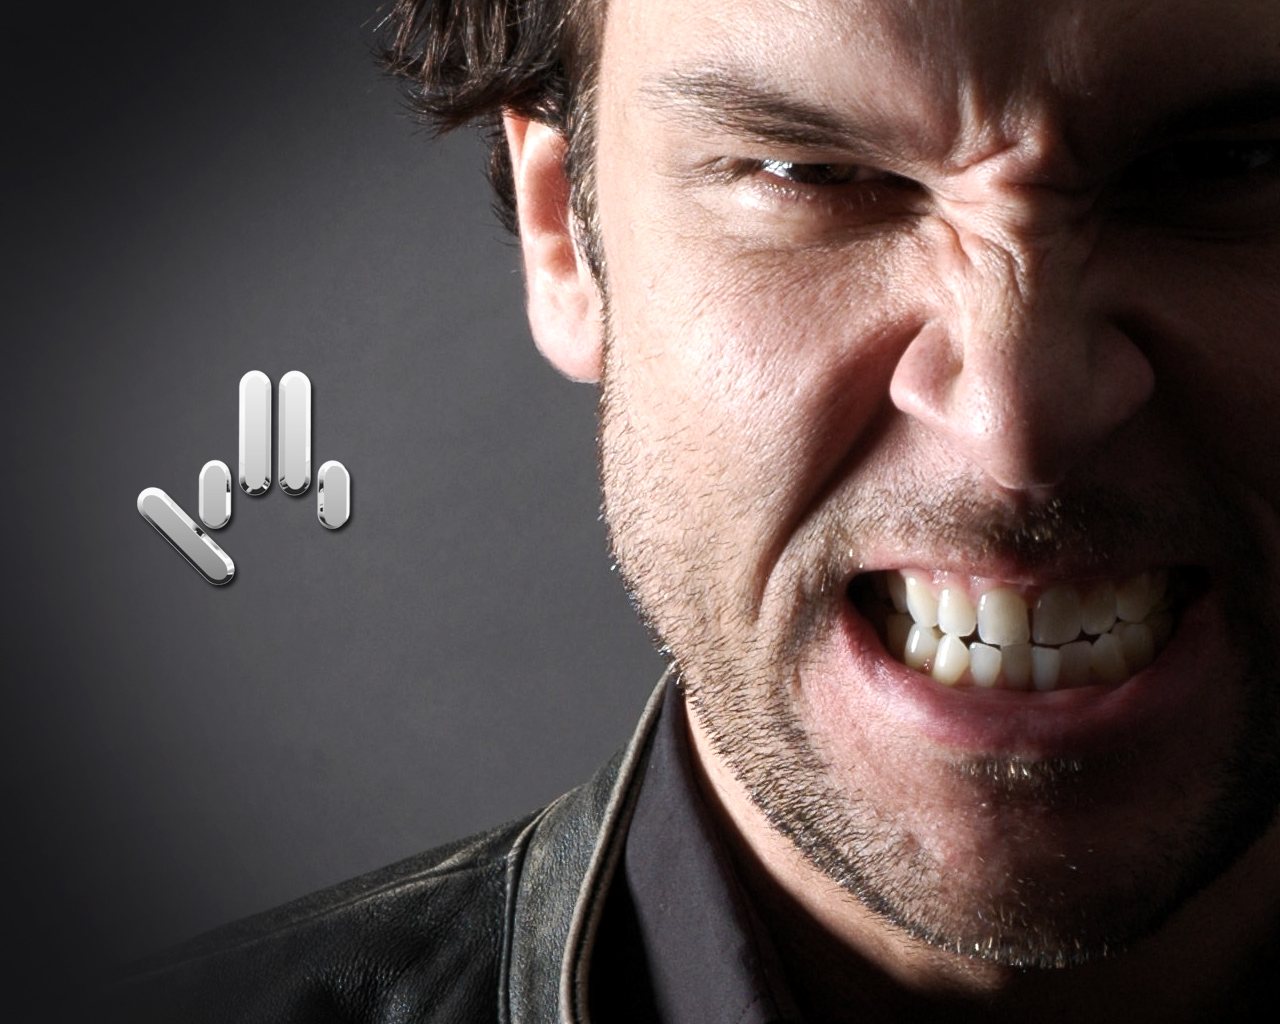 Angry Dane Cook Wallpapers Angry Dane Cook Myspace 1280x1024